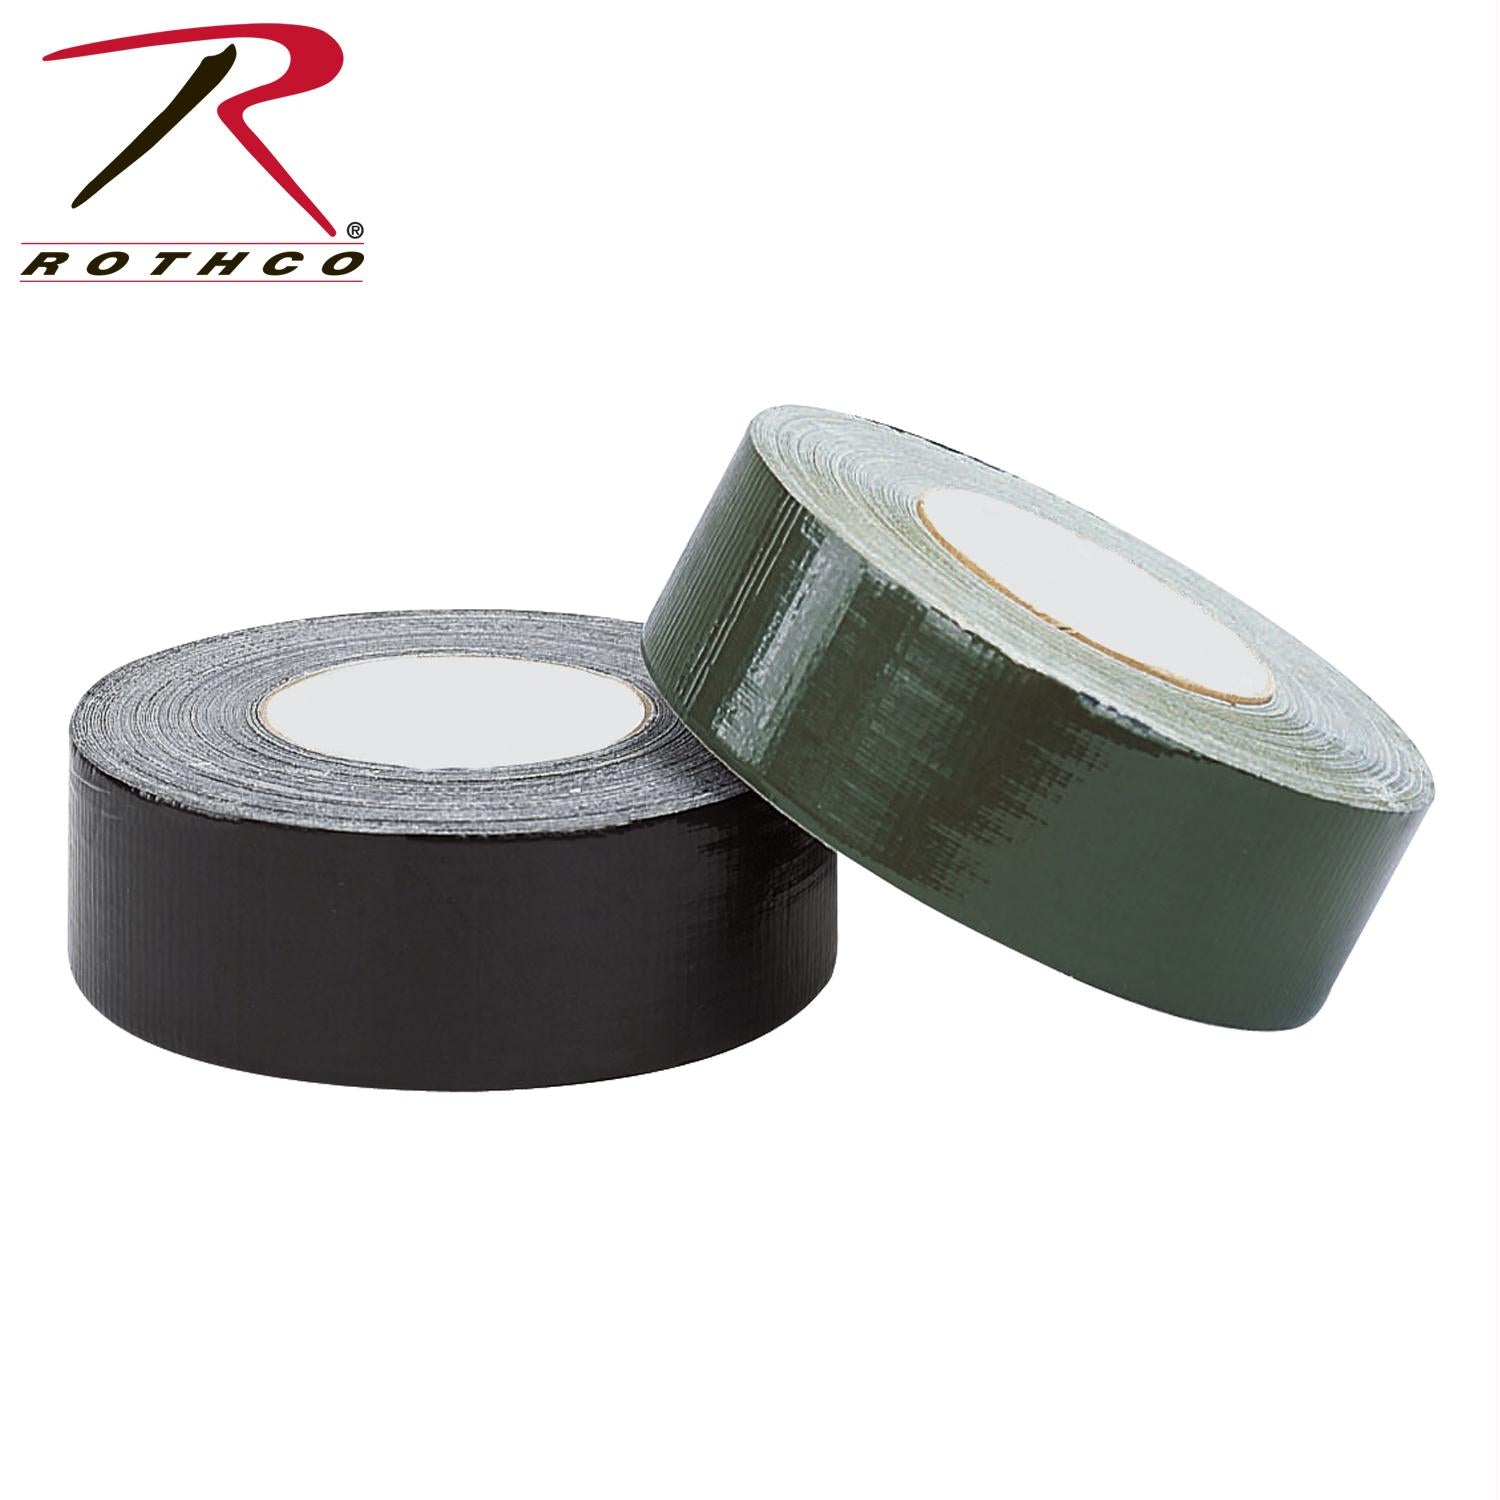 Rothco Military Duct Tape AKA 100 Mile An Hour Tape - Black